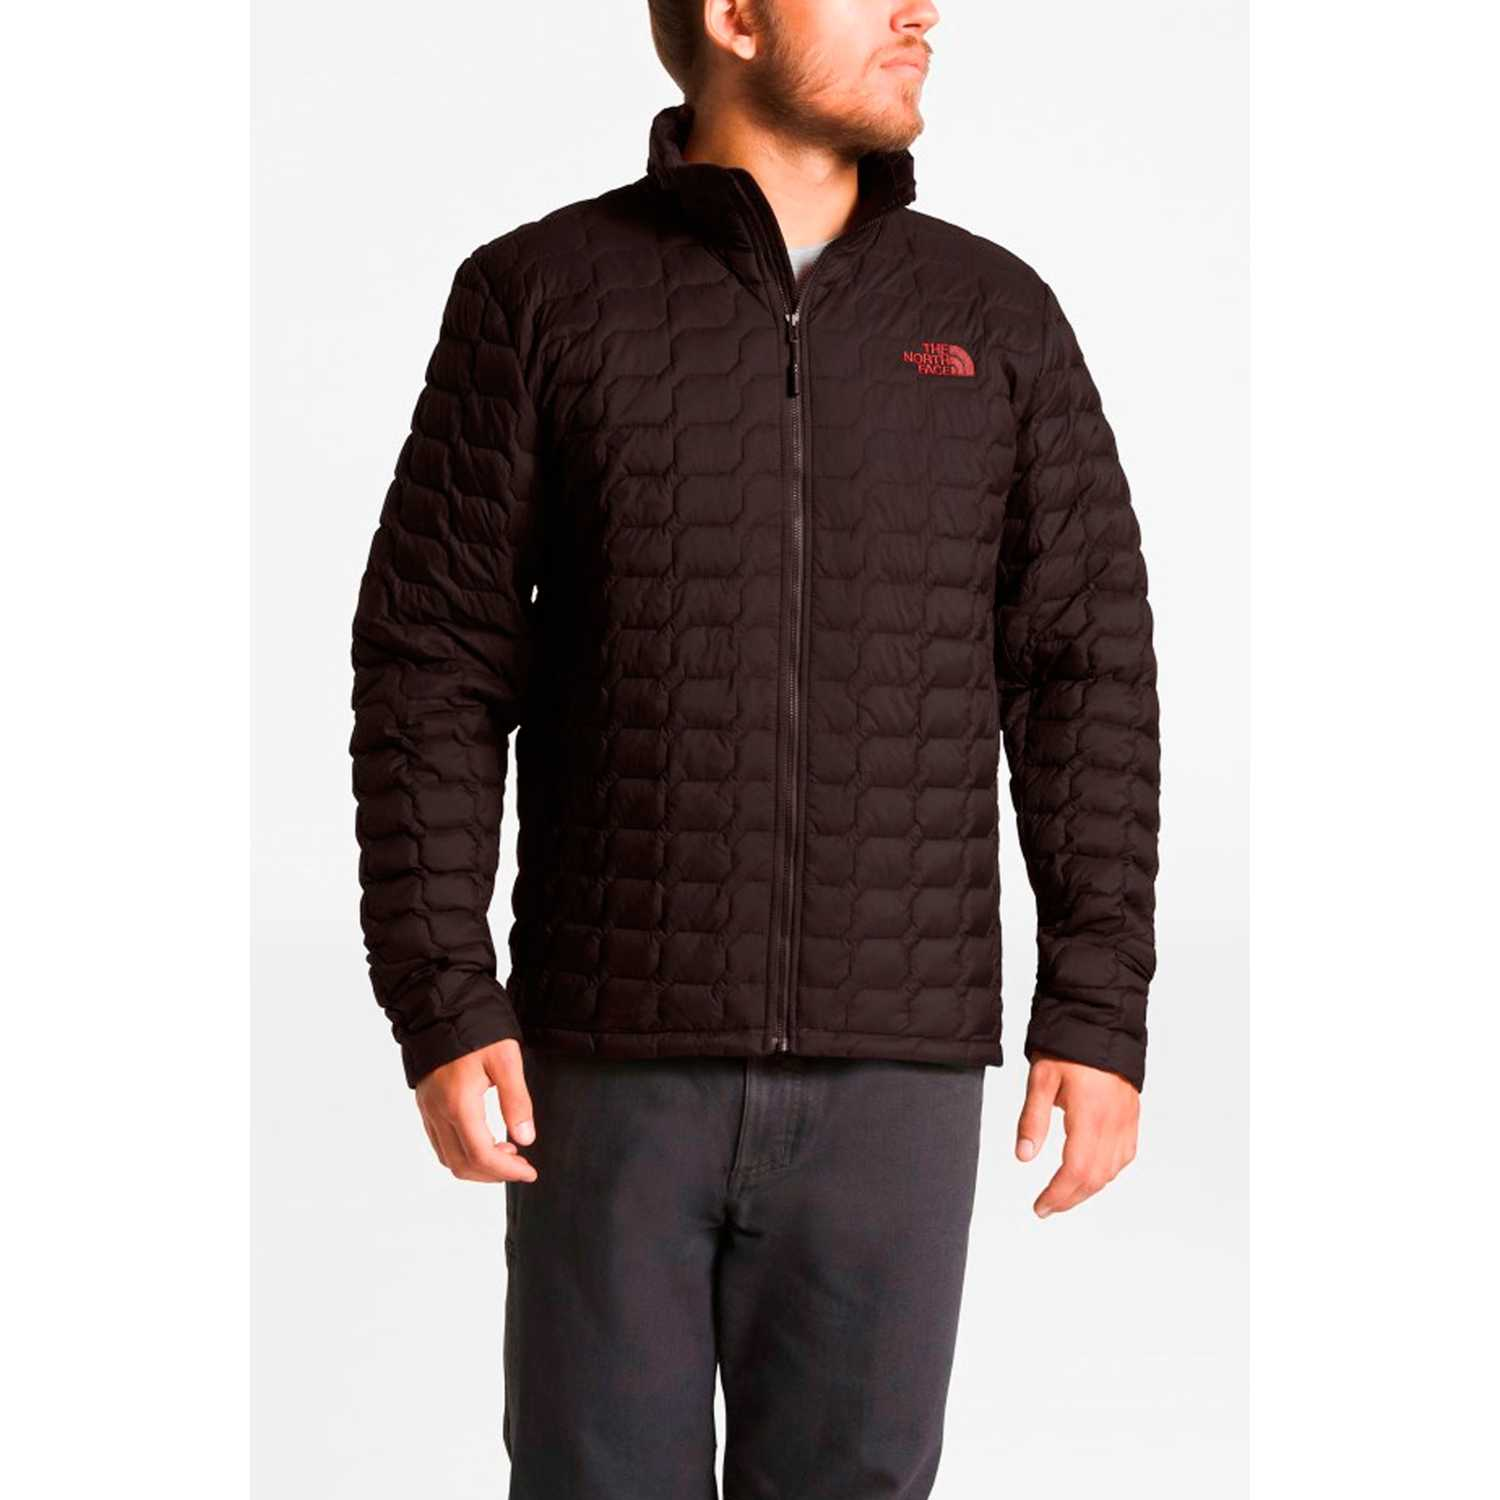 The North Face m thermoball jacket Marron Sweatshirts Deportivos